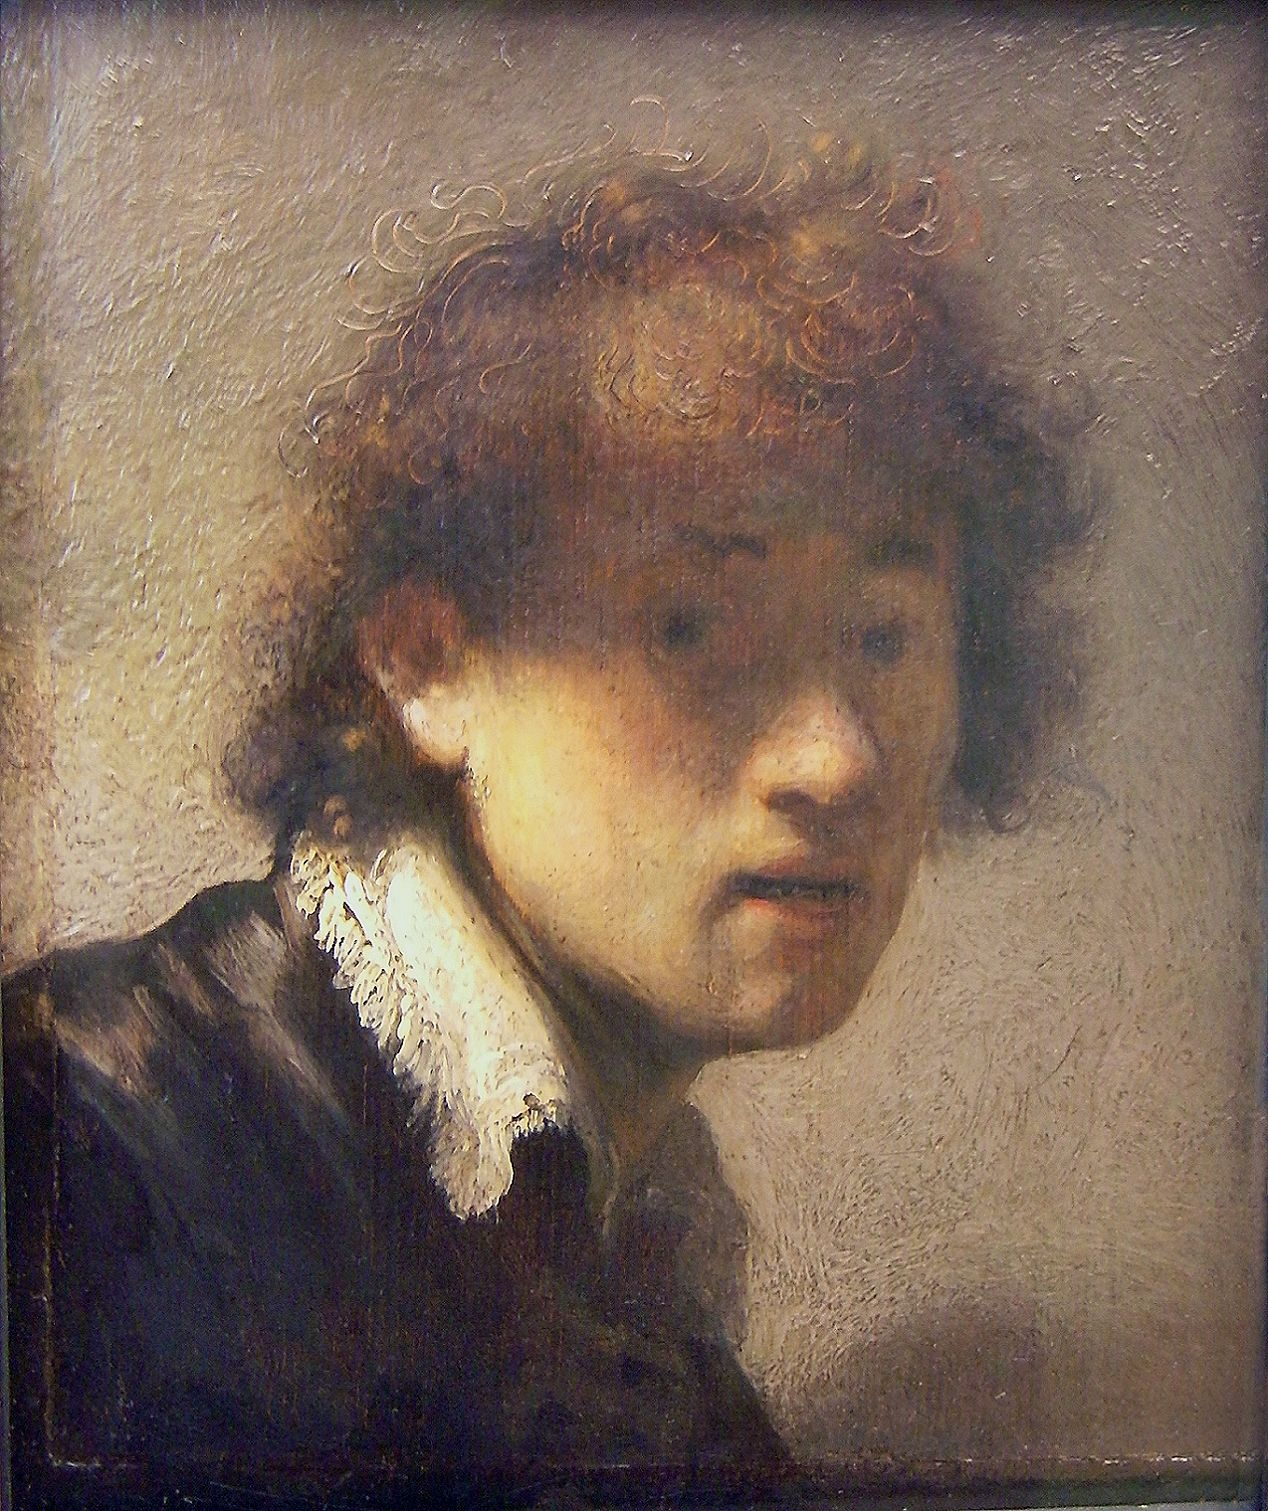 Self-portrait at an early age, 1629 Rembrandt